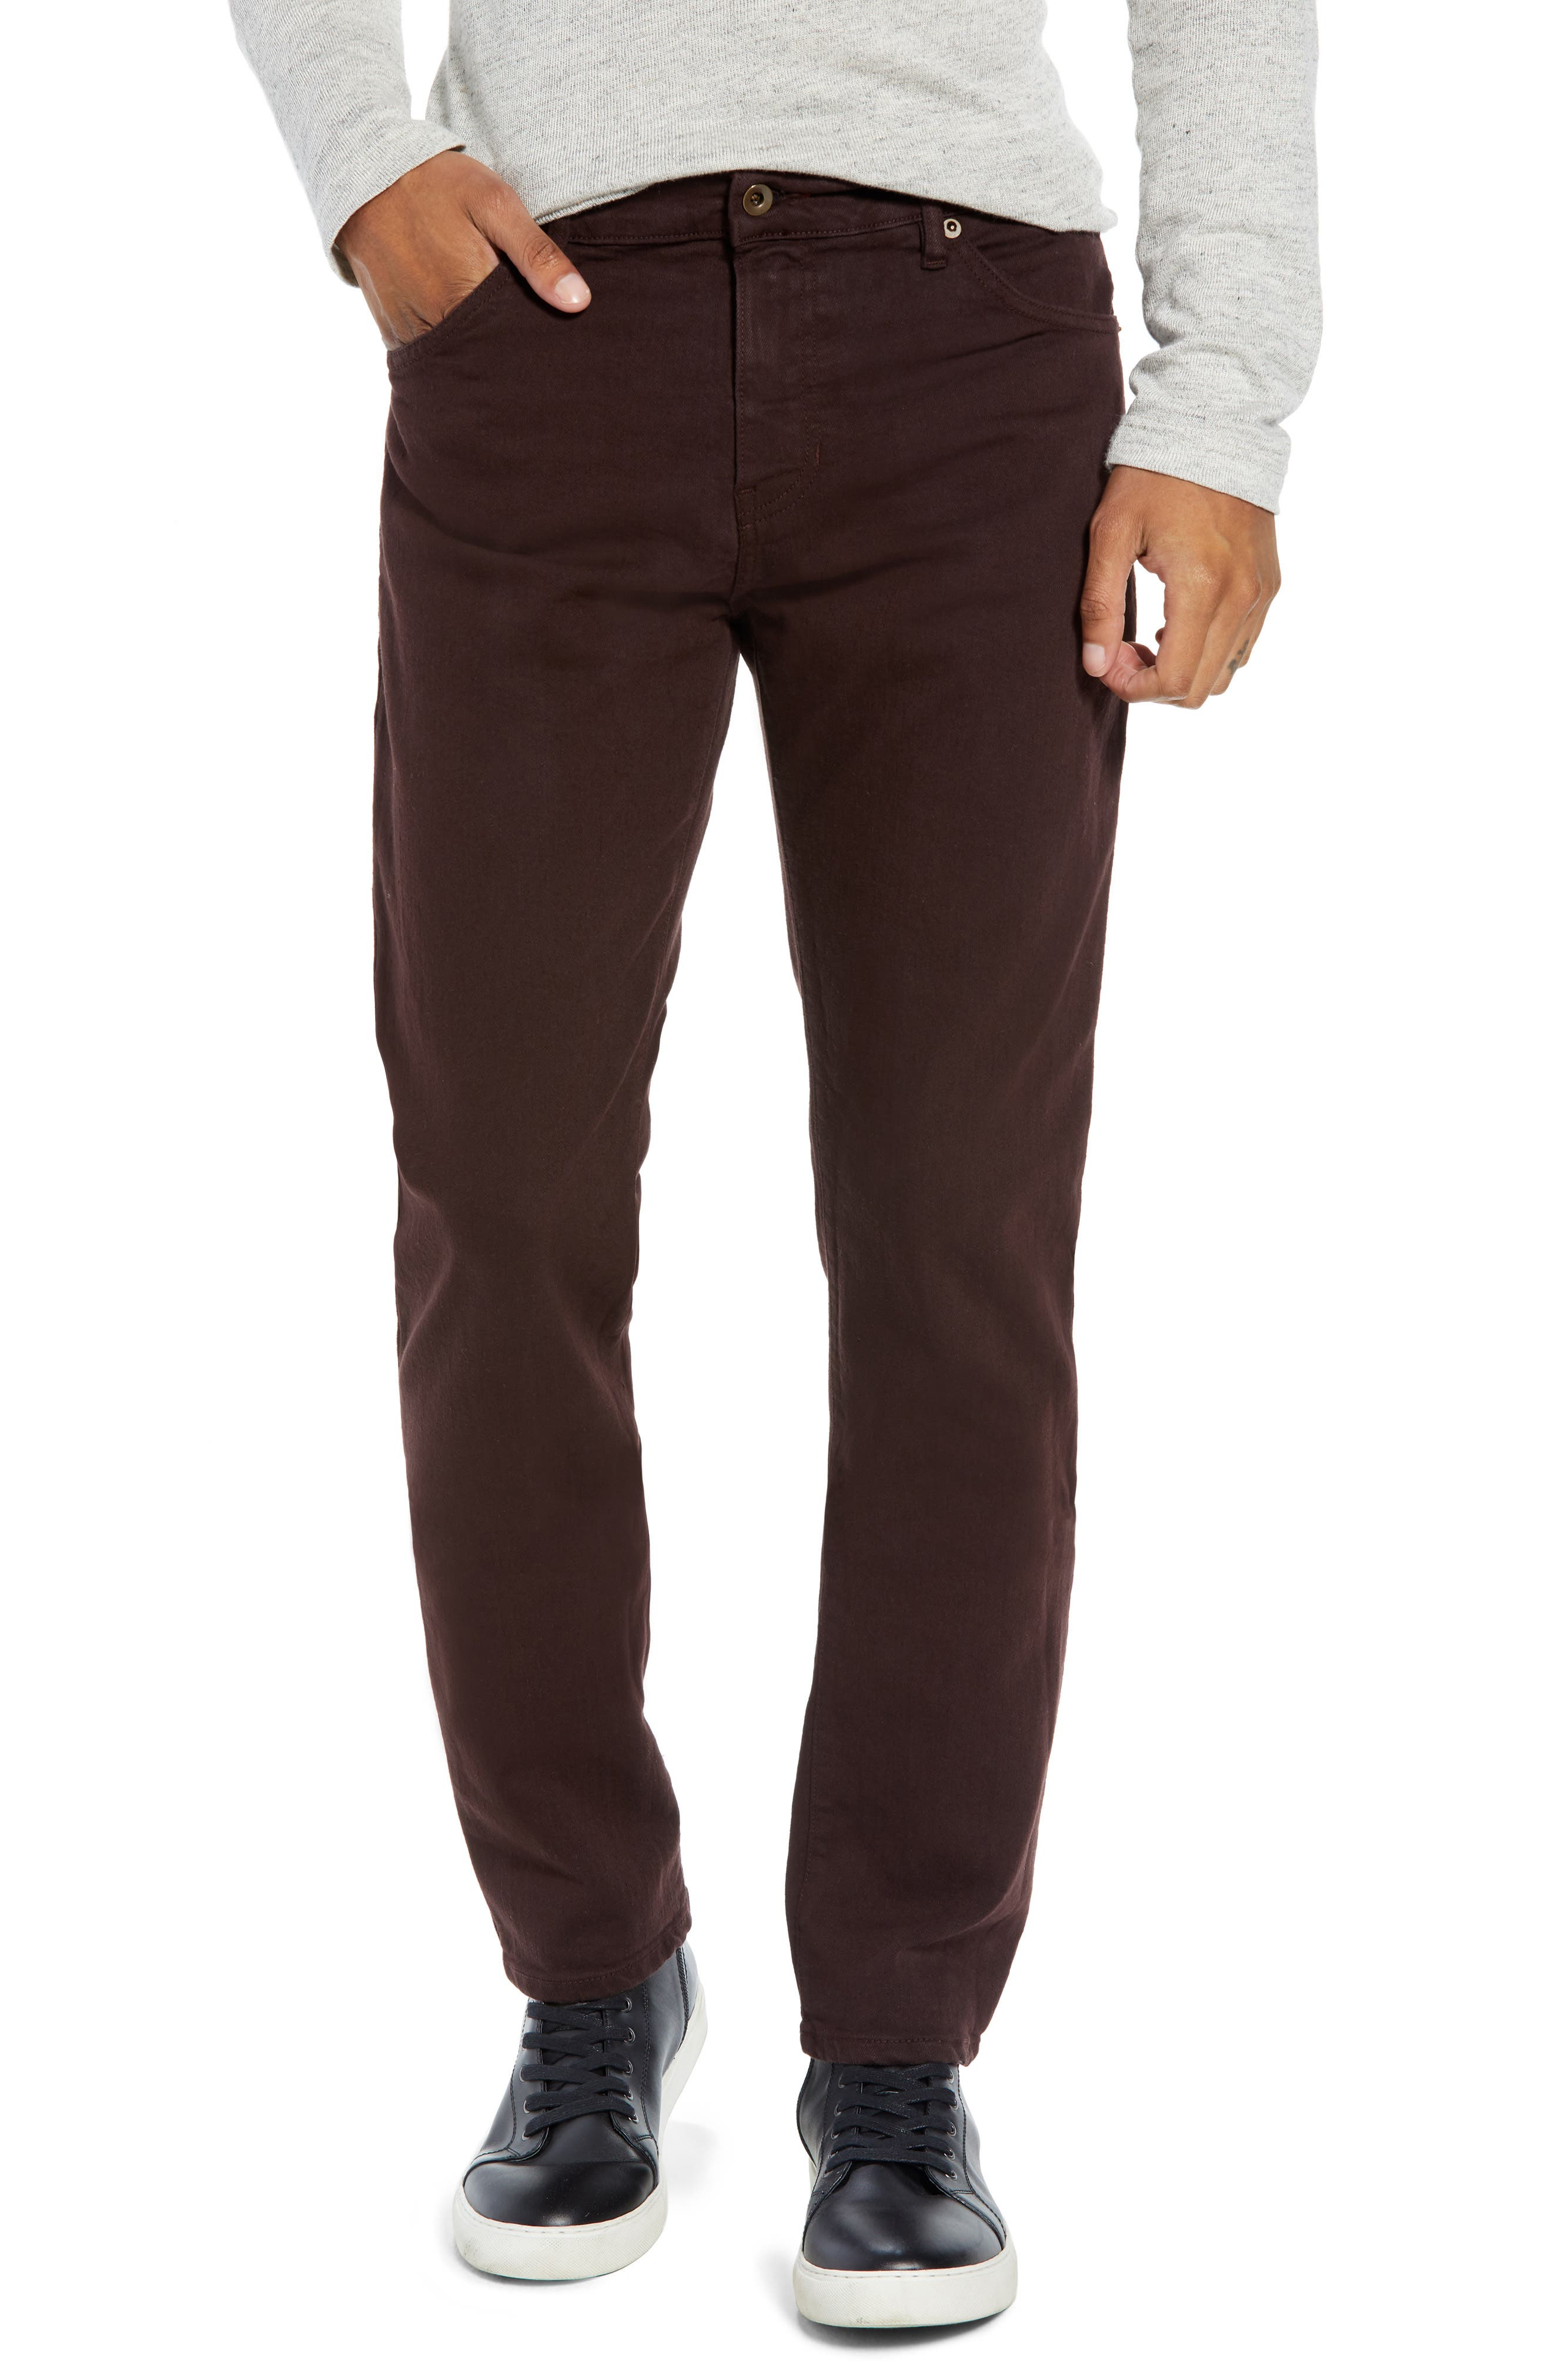 RALEIGH DENIM Raleight Denim Martin Skinny Fit Jeans in Currant